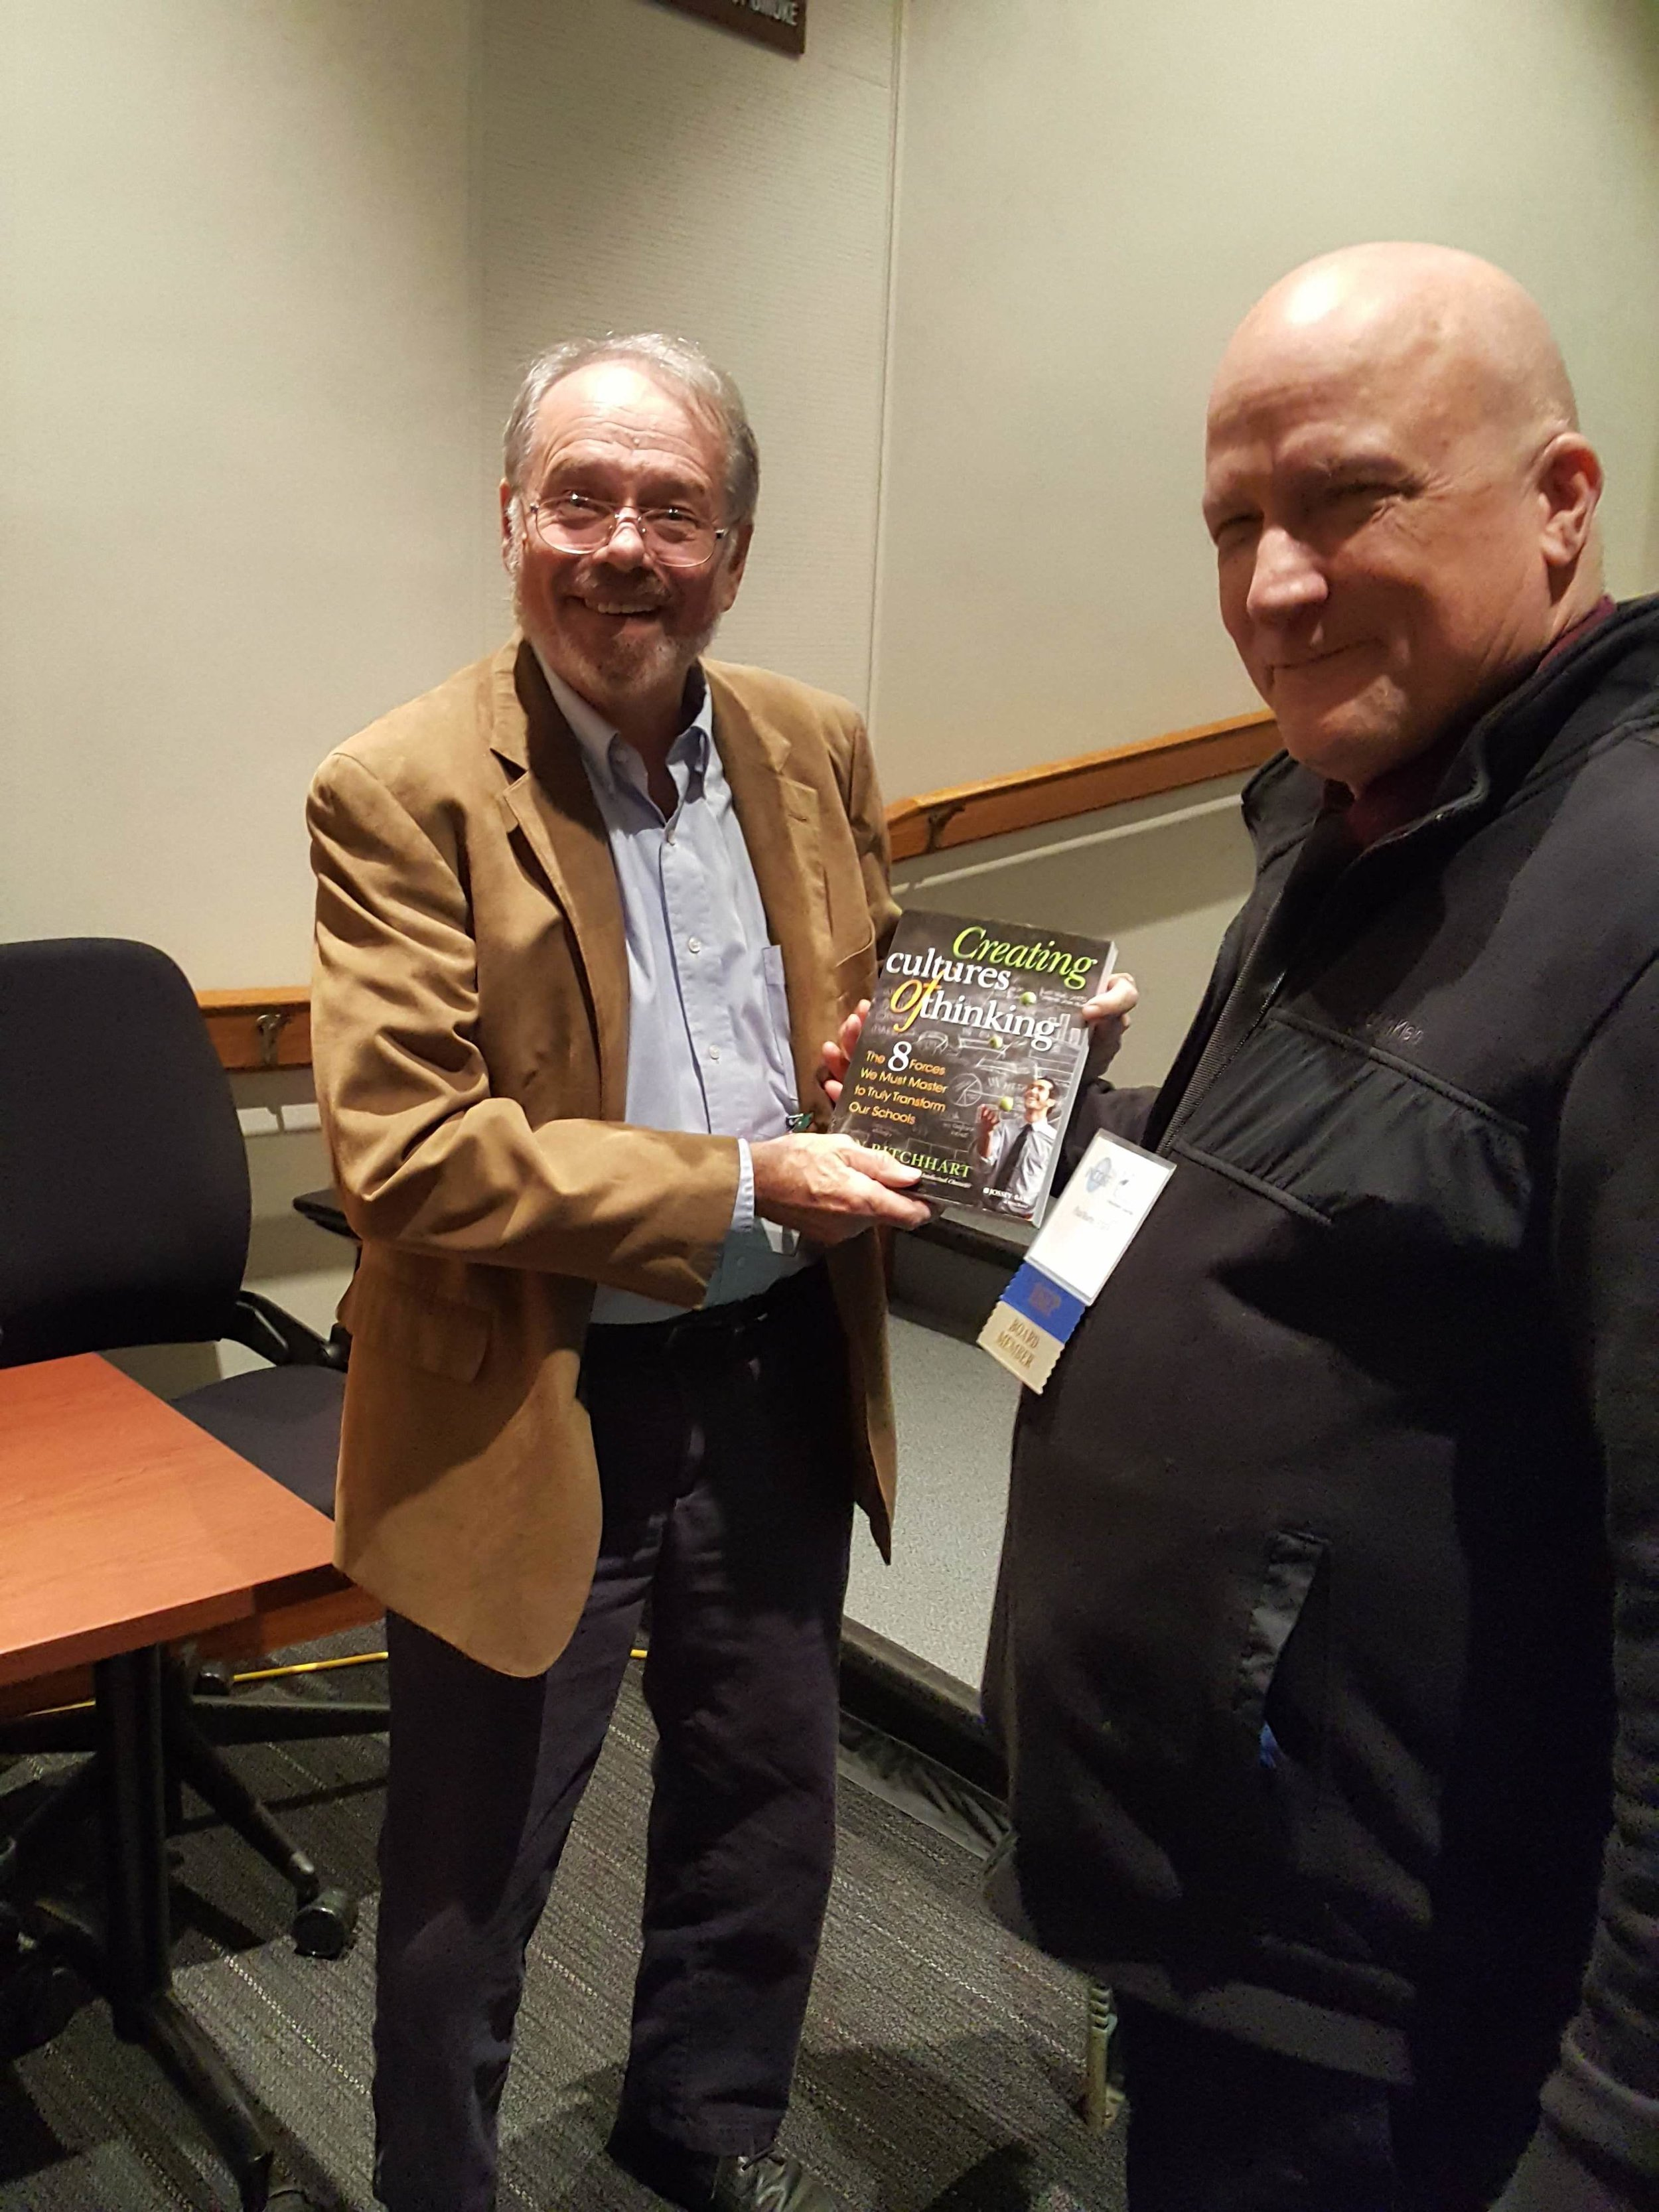 Jim Jenkins, founder and executive director of Applied Technology Institute, won the raffle for the book:  Creating Cultures of Thinking: The 8 Forces We Must Master to Truly Transform Our Schools